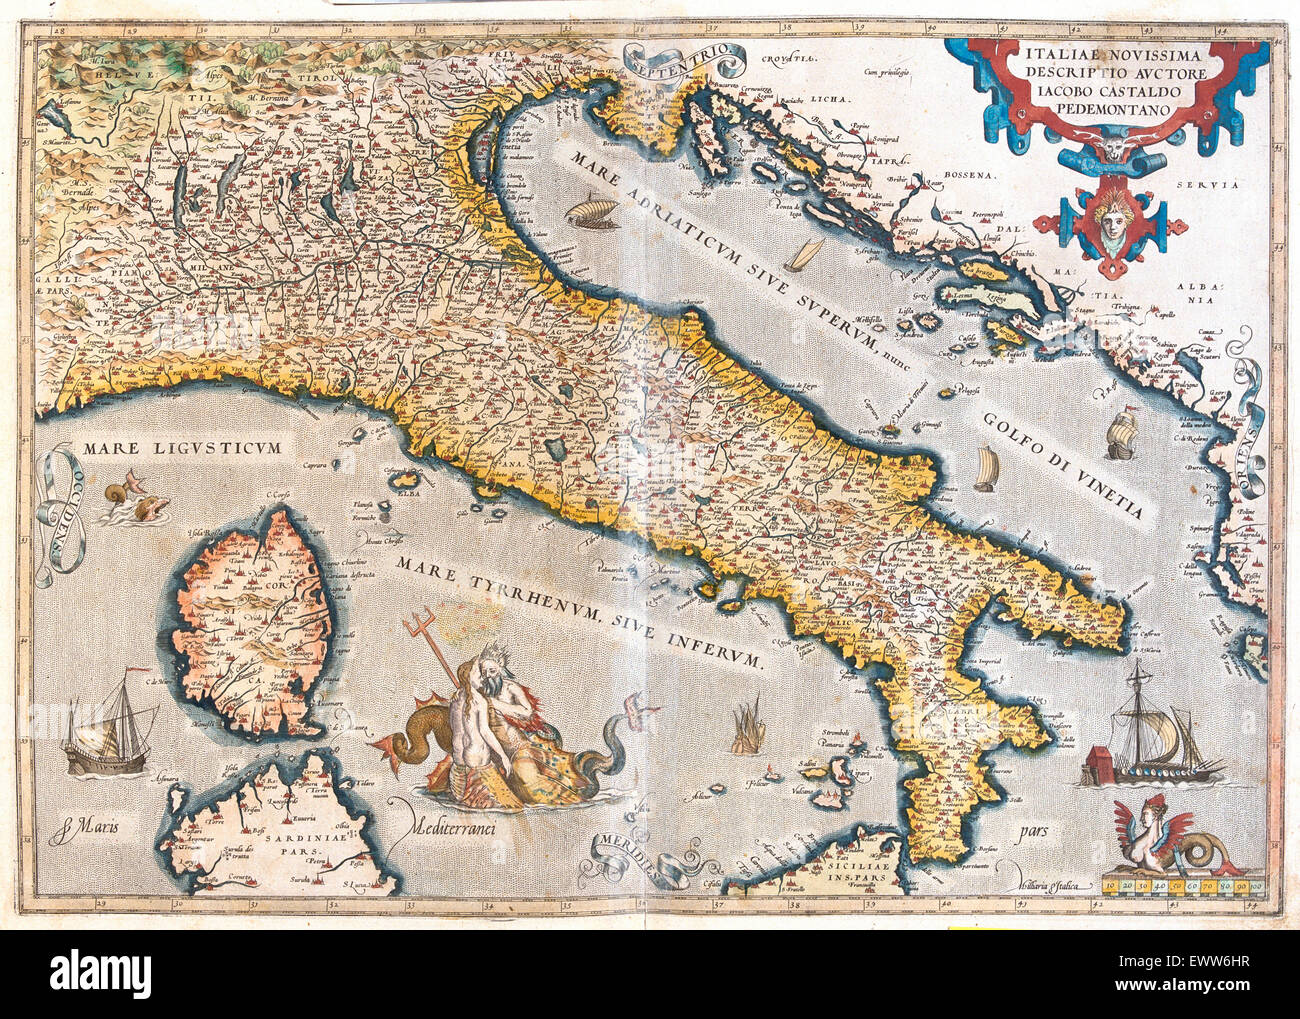 old map of Italy, with Corsica and Sardinia - Stock Image